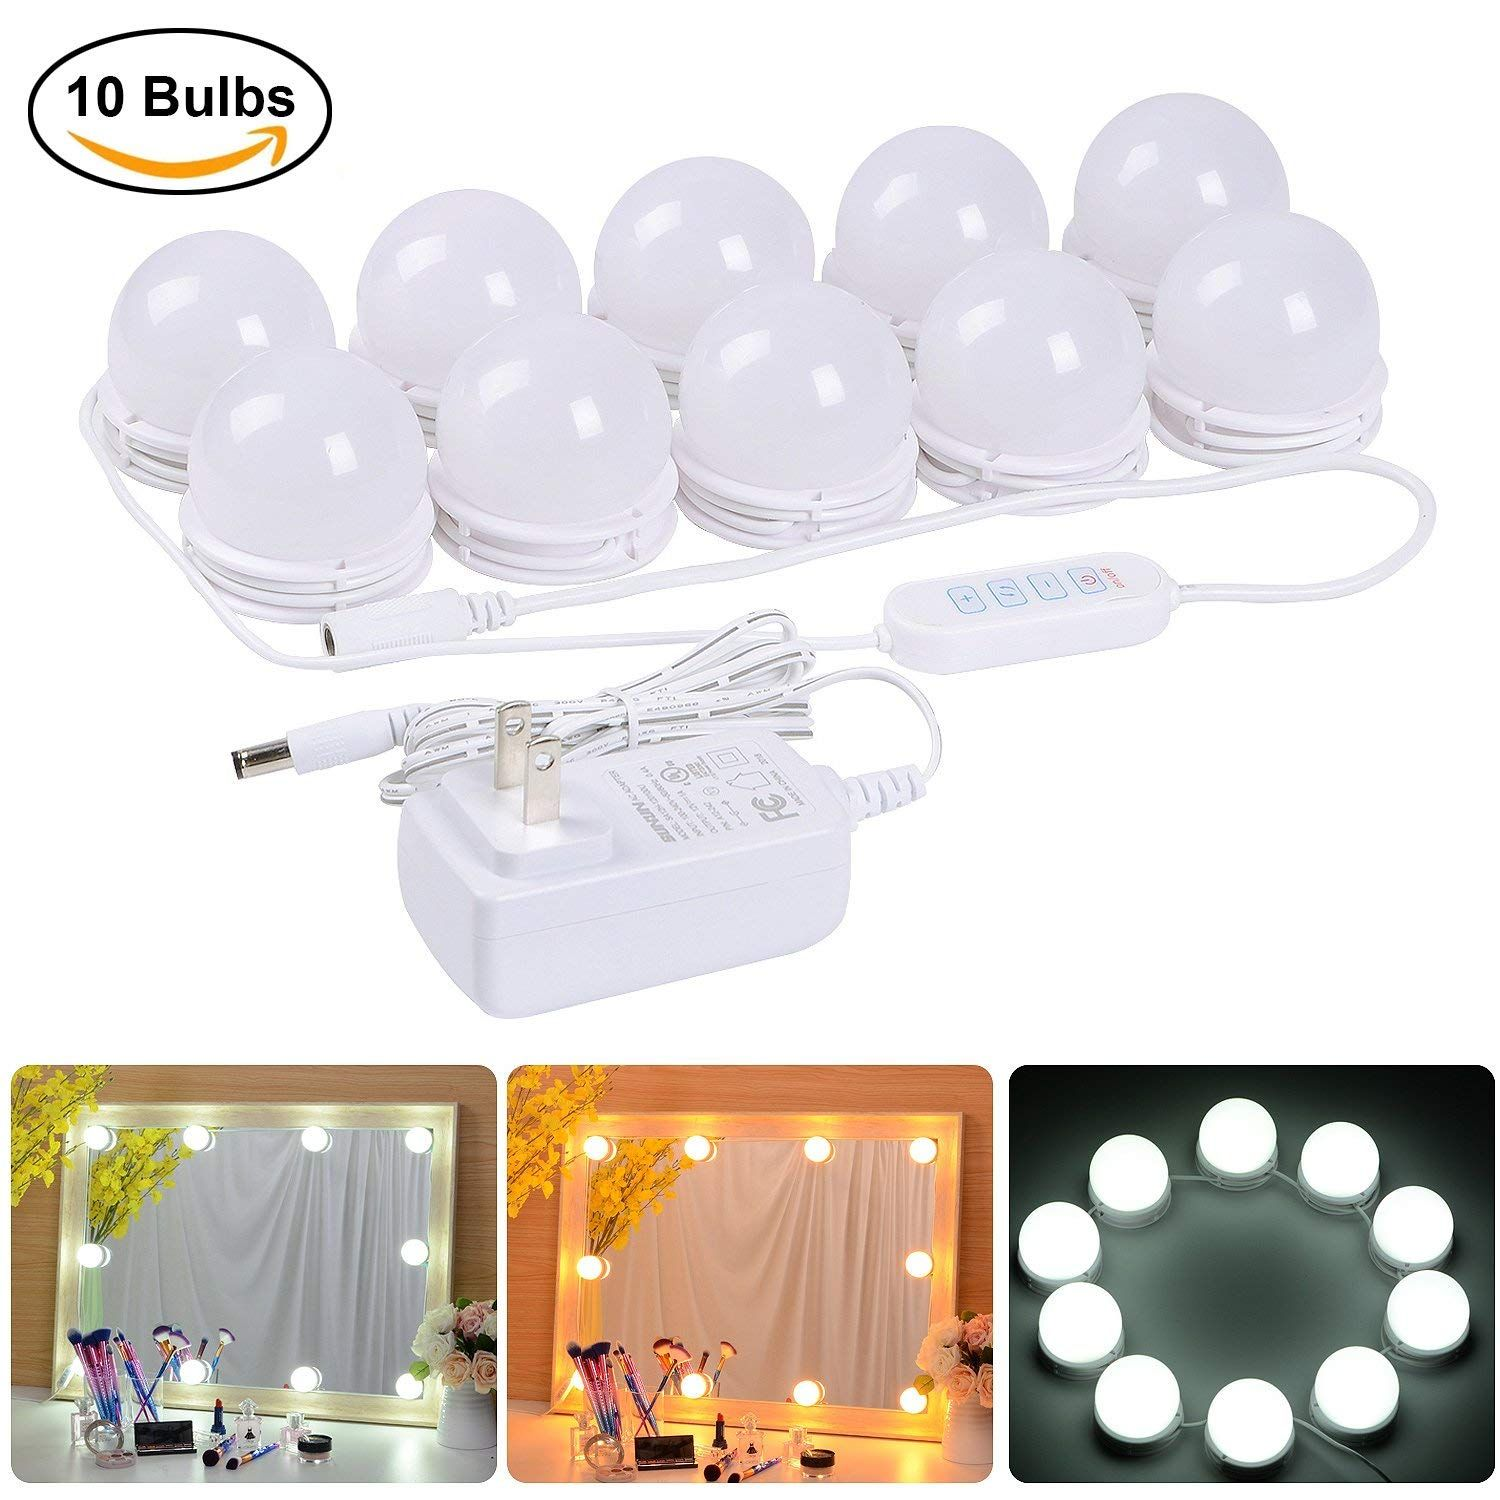 Coolmade Hollywood Style LED Vanity Mirror Lights Kit with 10 Dimmable Light Bulbs, 2 Color Lighting Modes Lighting Fixture Strip for Makeup Vanity Table Set in Dressing Room (Mirror Not Include) - Walmart.com